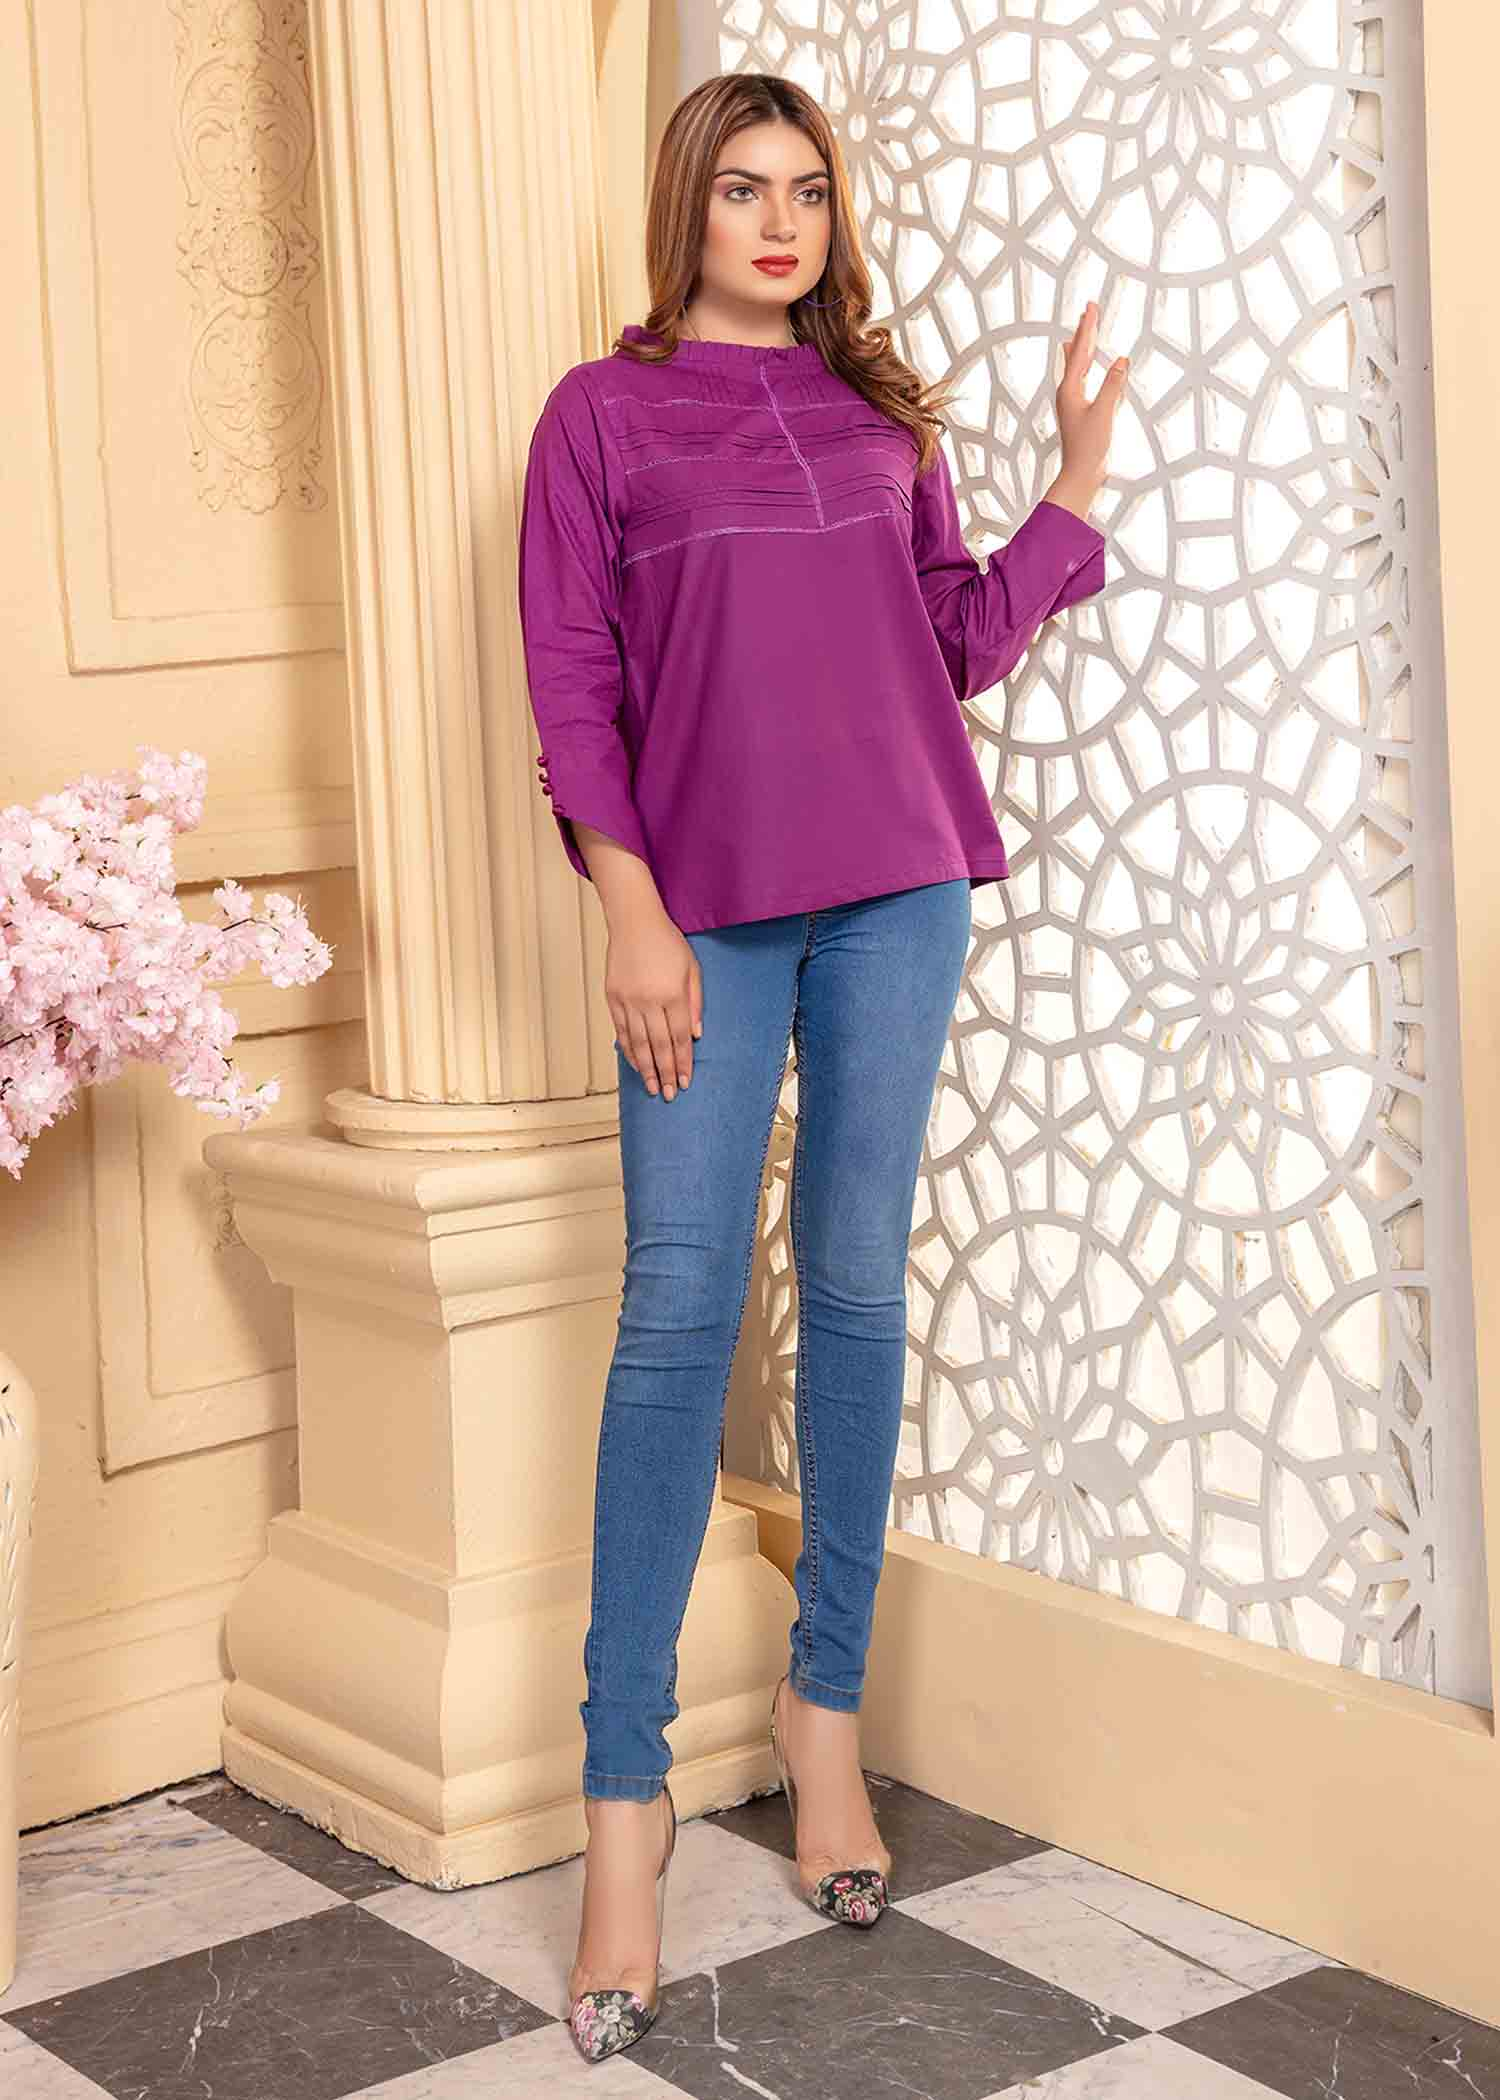 Tiered Top (VOL-01A-3-7B)